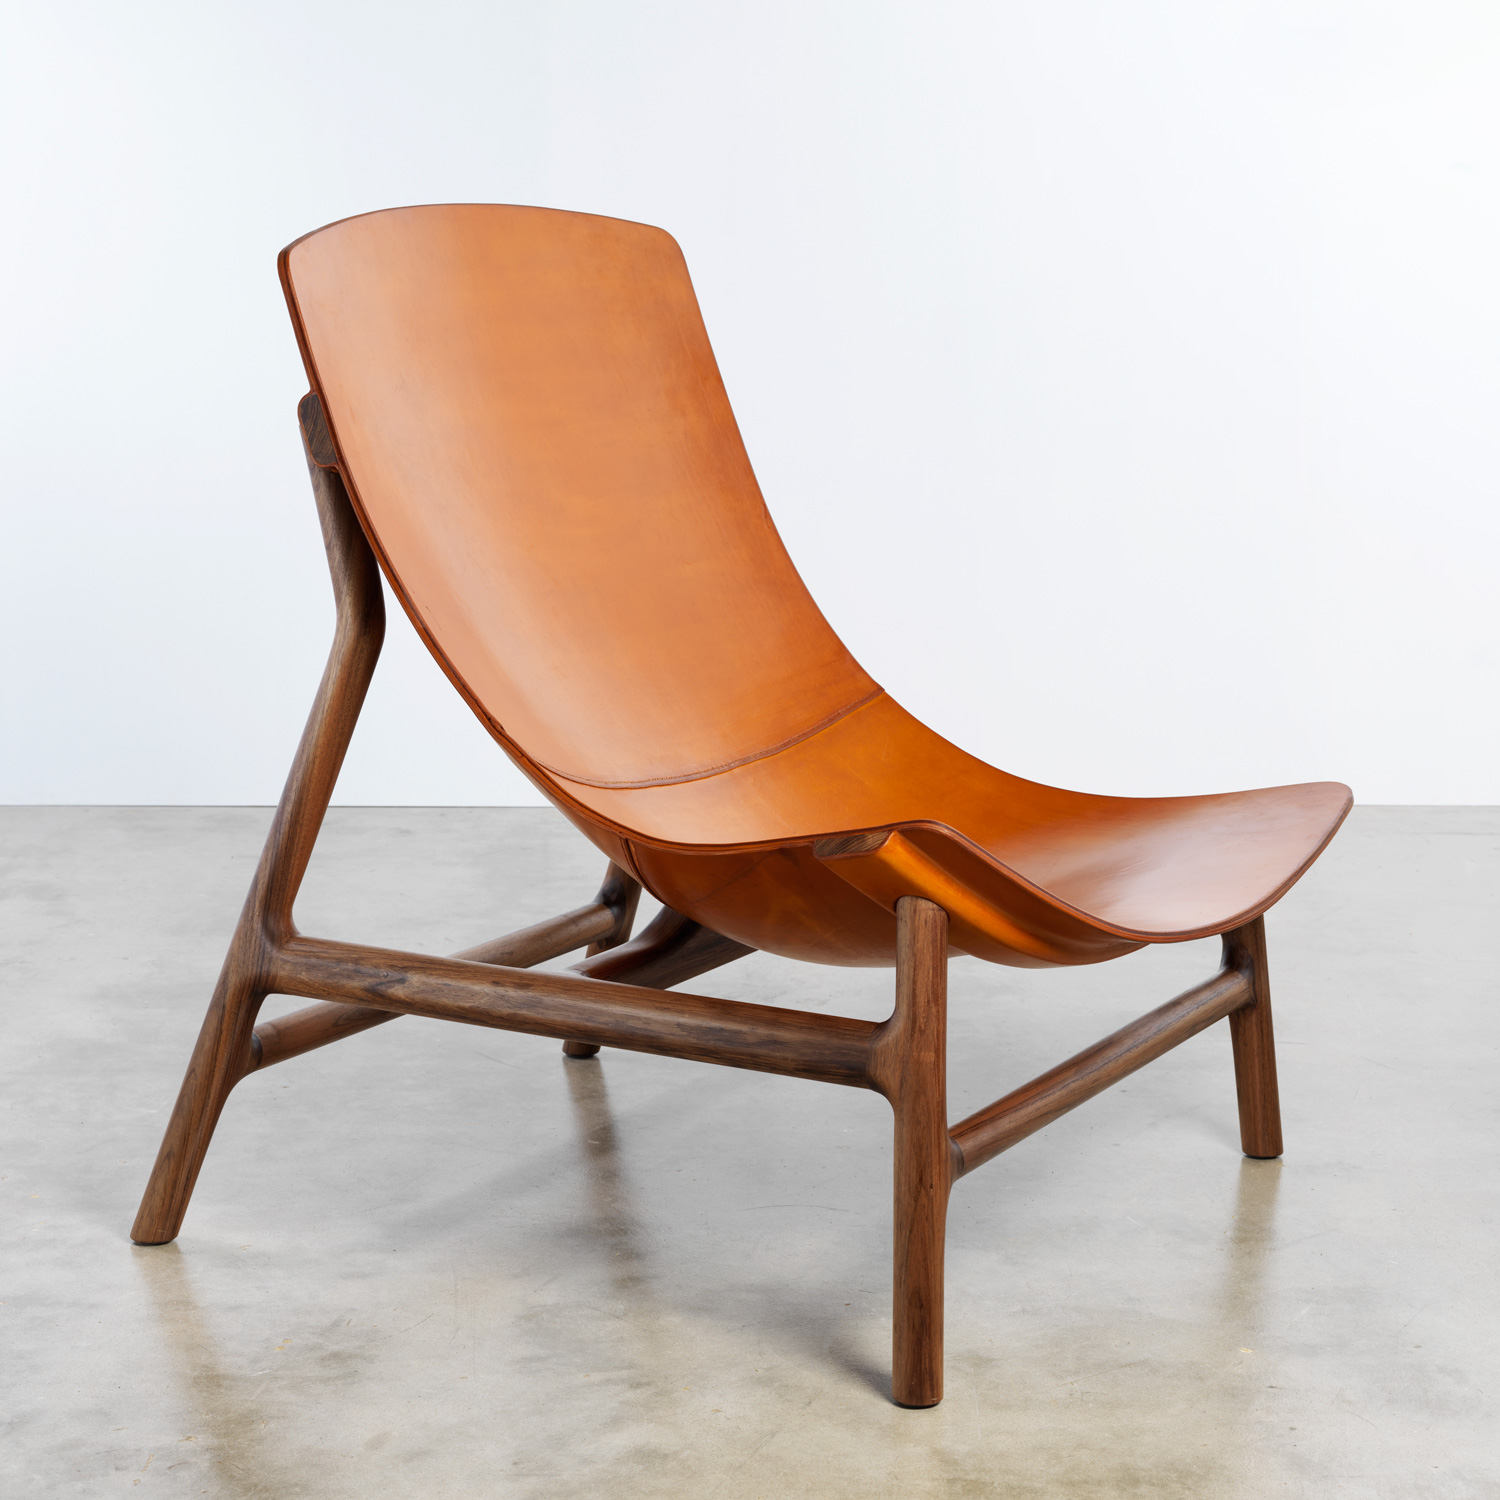 local design settlers chair by jon goulder australian designers